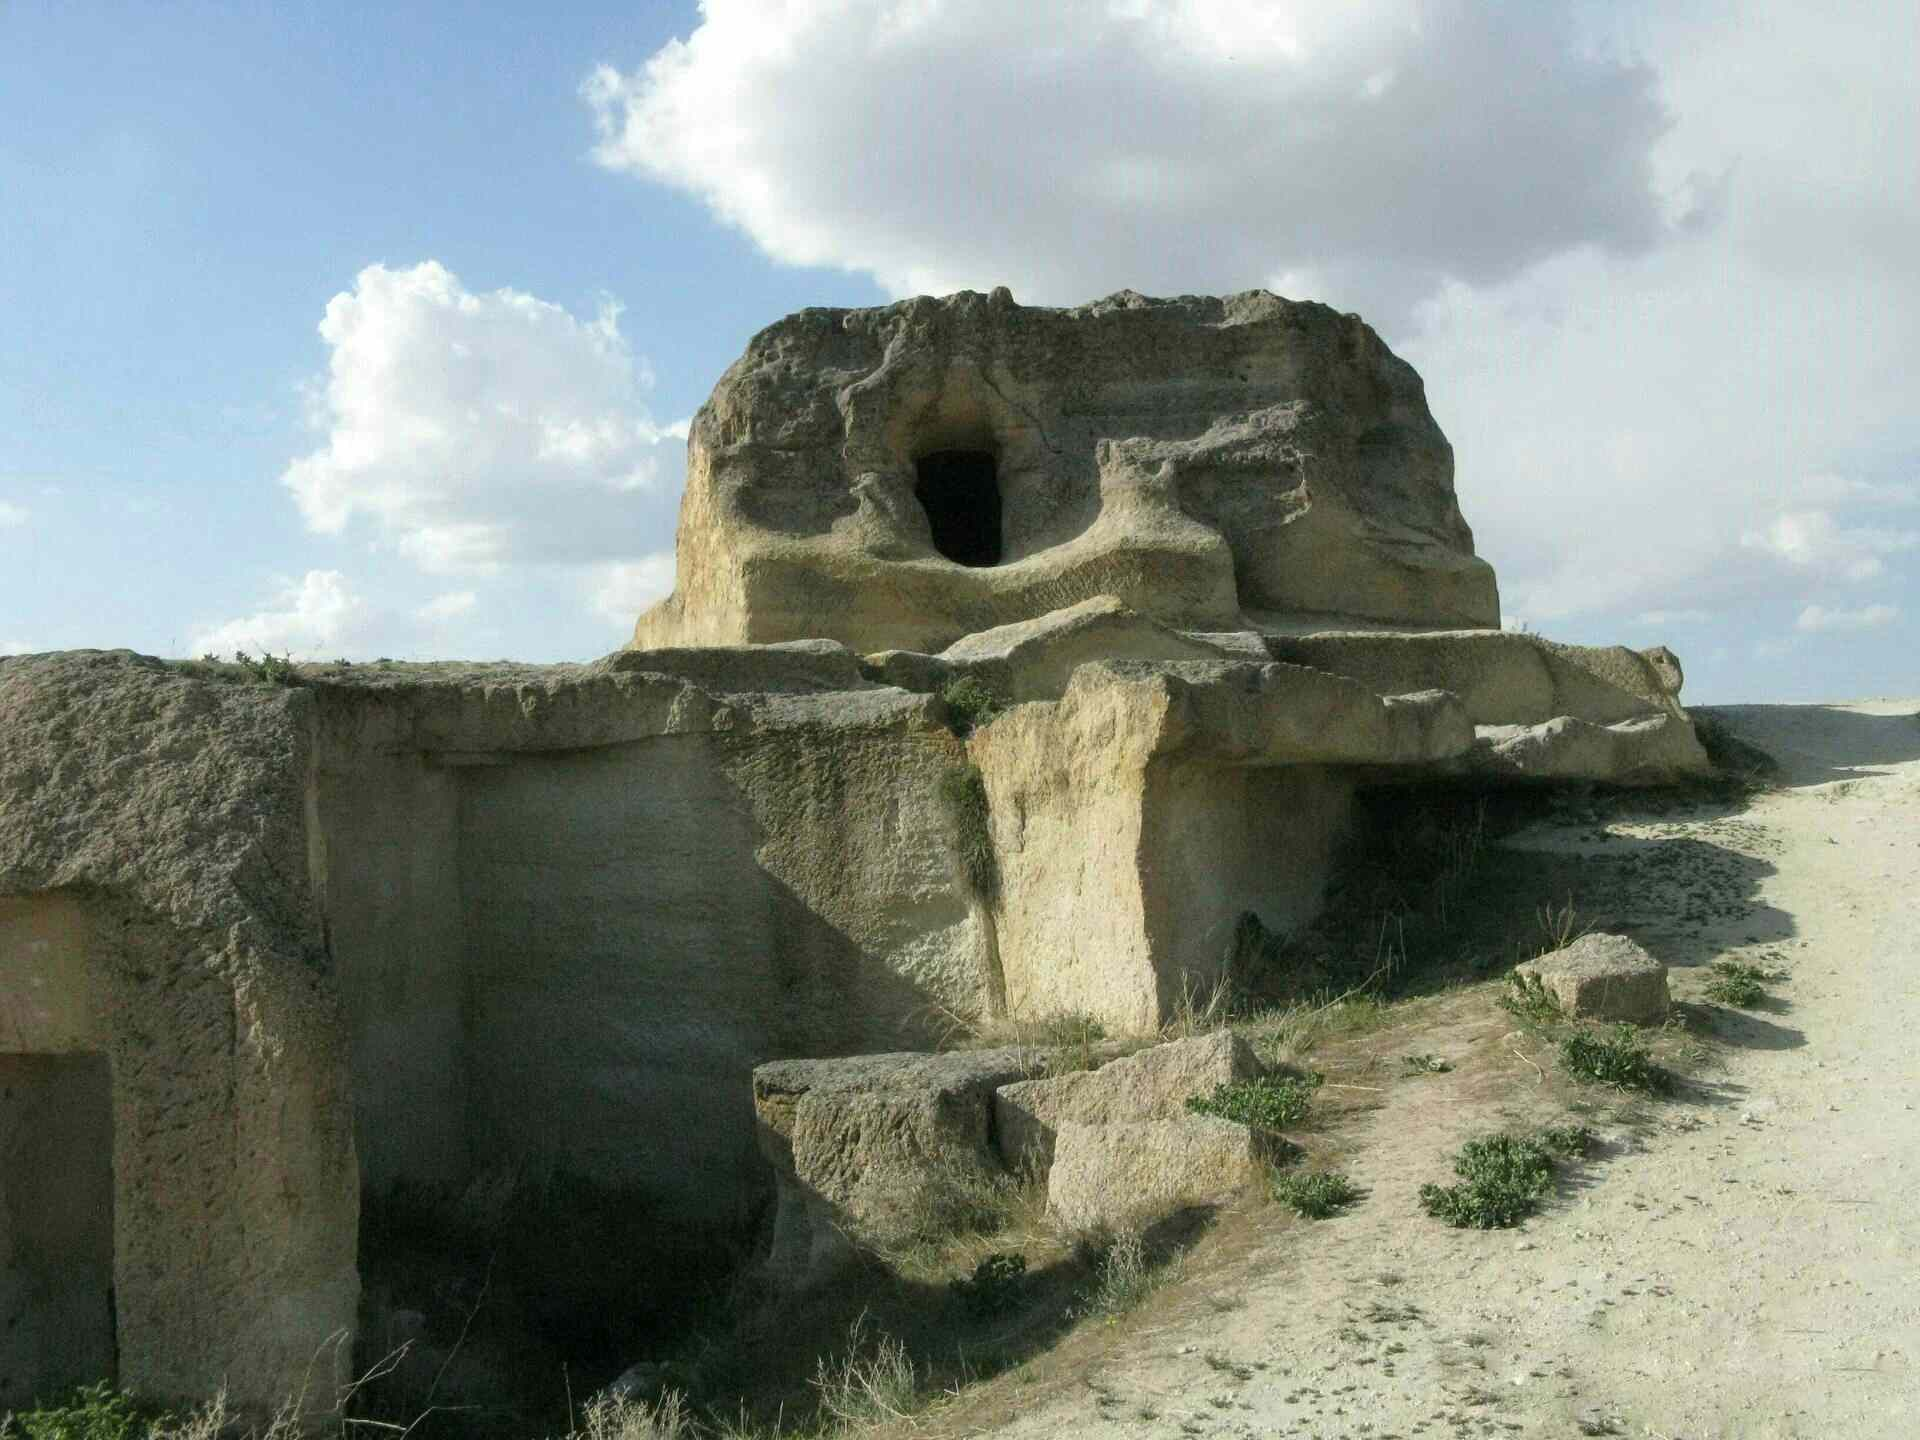 A huge million-year-old, advanced man-made underground complex existed in the past 6